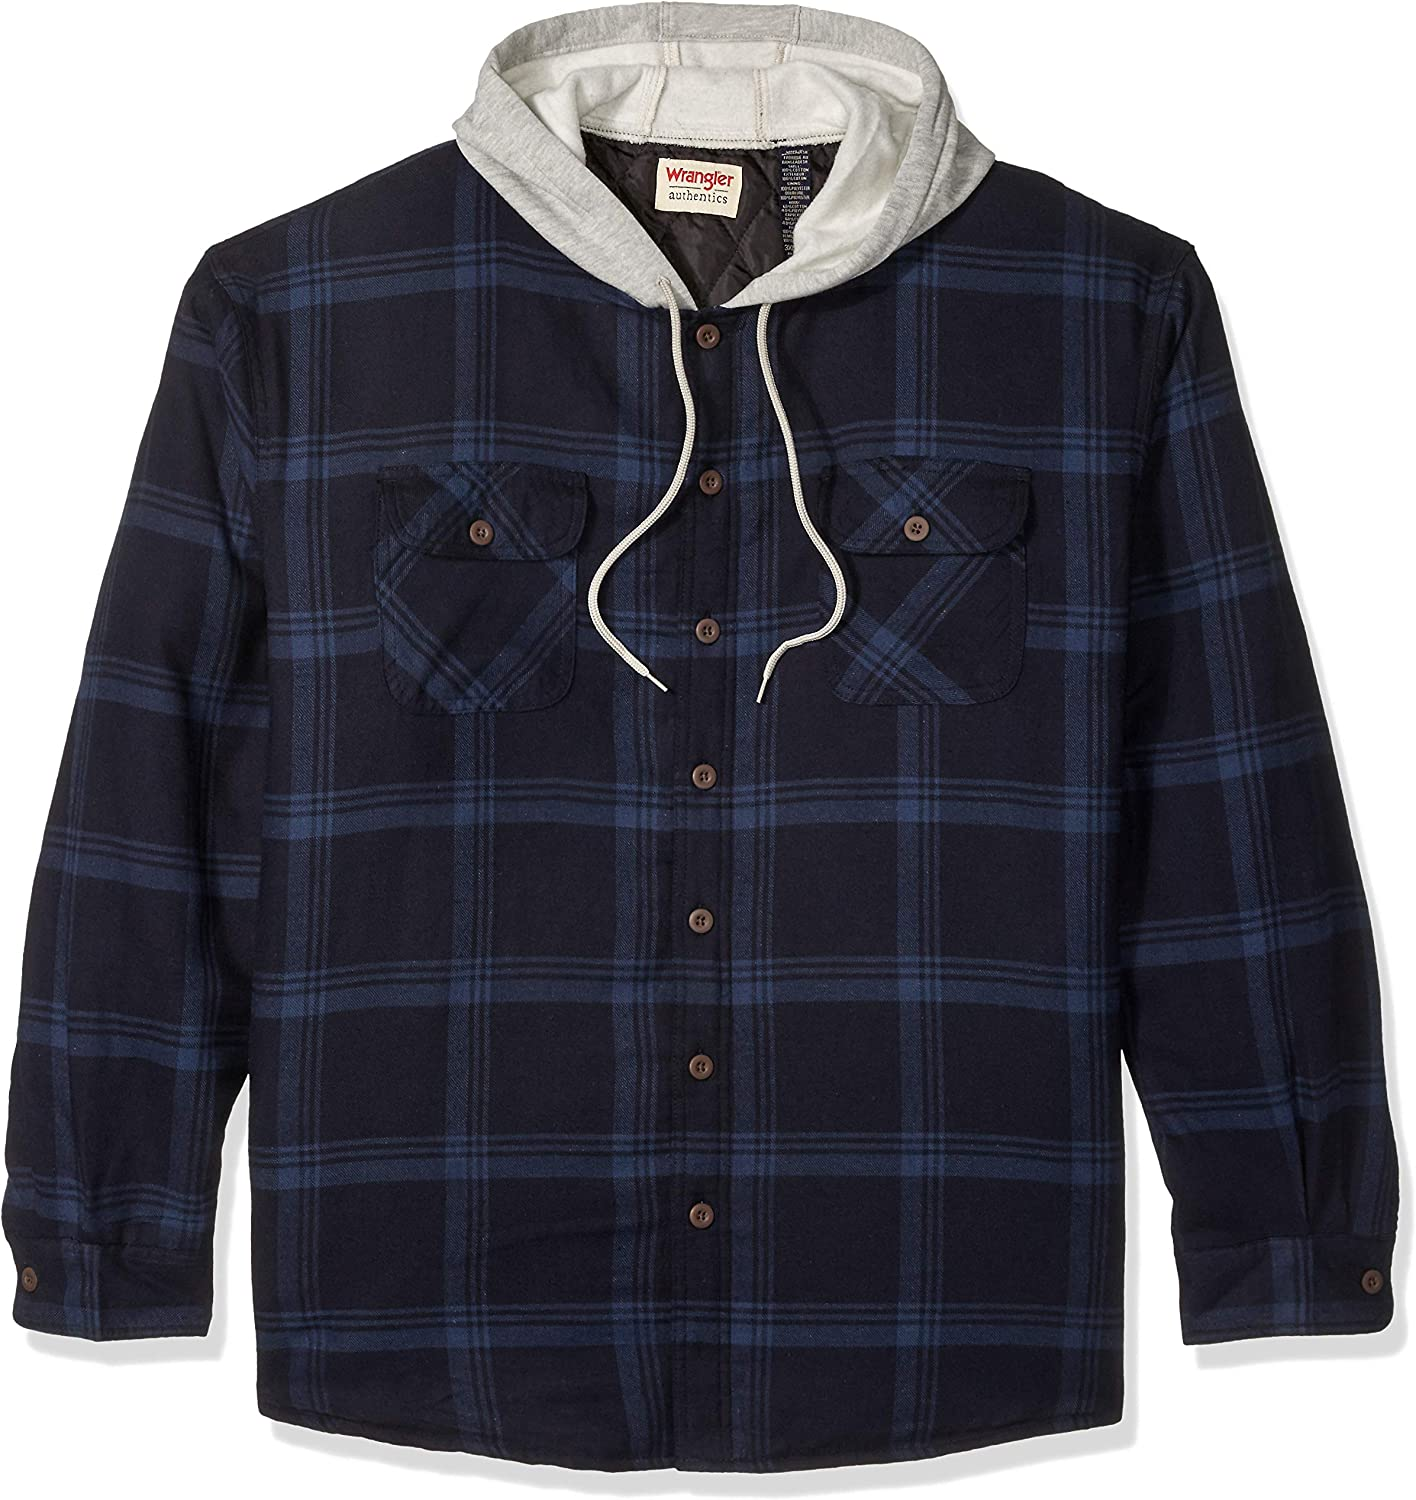 Wrangler mens Long Sleeve Quilted Lined Flannel Jacket With Hood Button Down Shirt XX-Large US Total Eclipse With Heather Gray